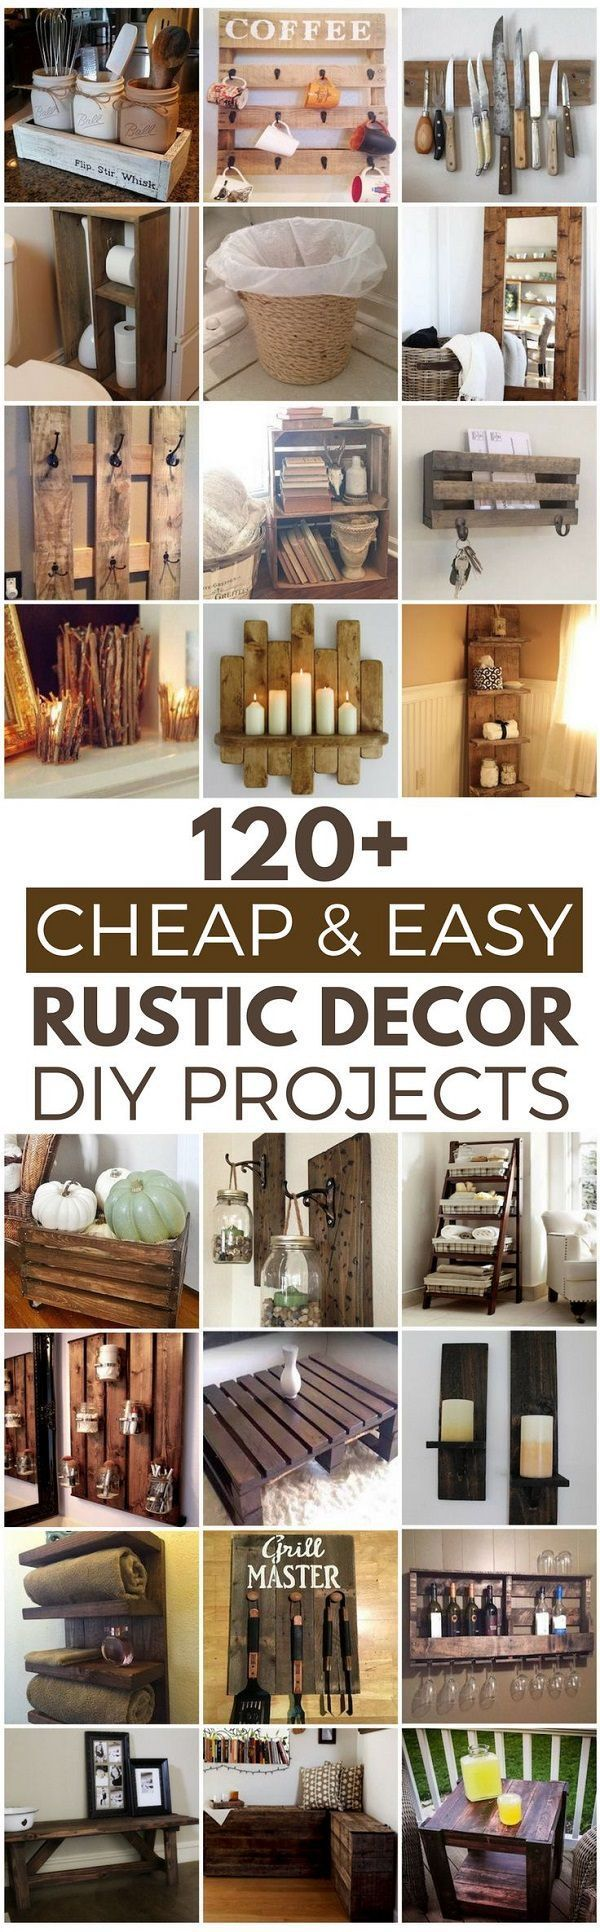 120 Cheap and Easy DIY Rustic Home Decor Ideas #ad